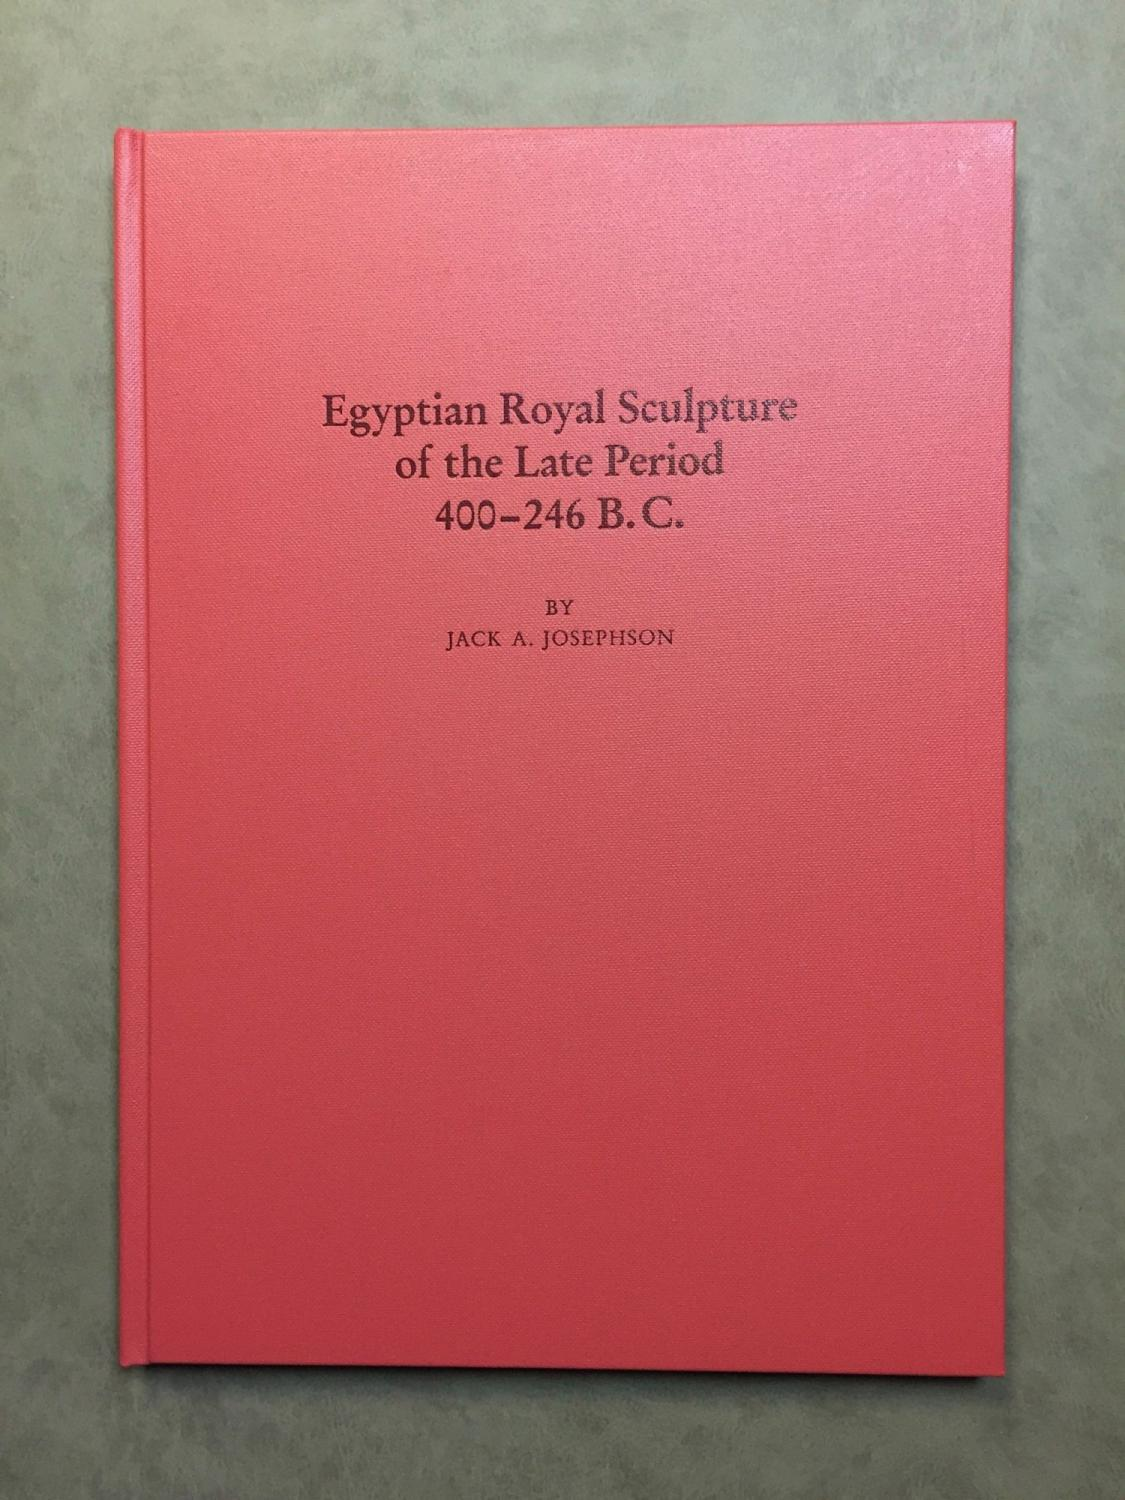 Egyptian_royal_sculpture_of_the_Late_Period_400246_BC_JOSEPHSON_Jack_A_Comme_Neuf_Couverture_rigide